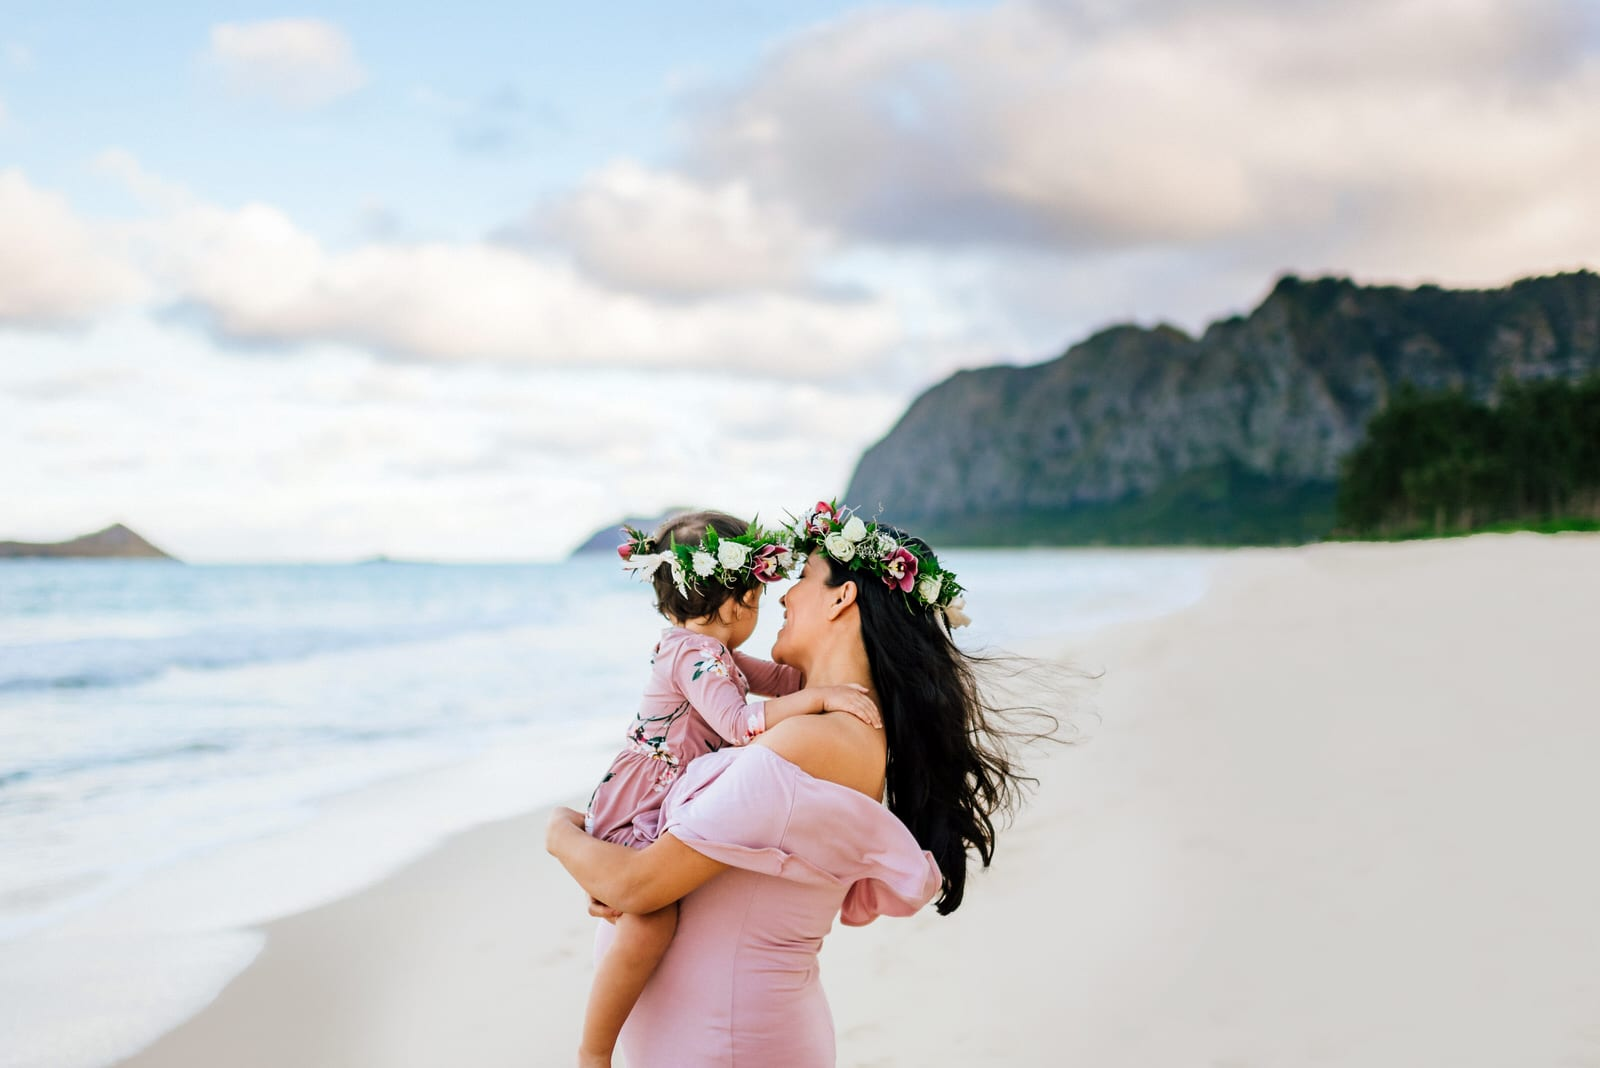 Oahu-Maternity-Photographer-Love-Haku-Flower-Crown-Water-5.jpg